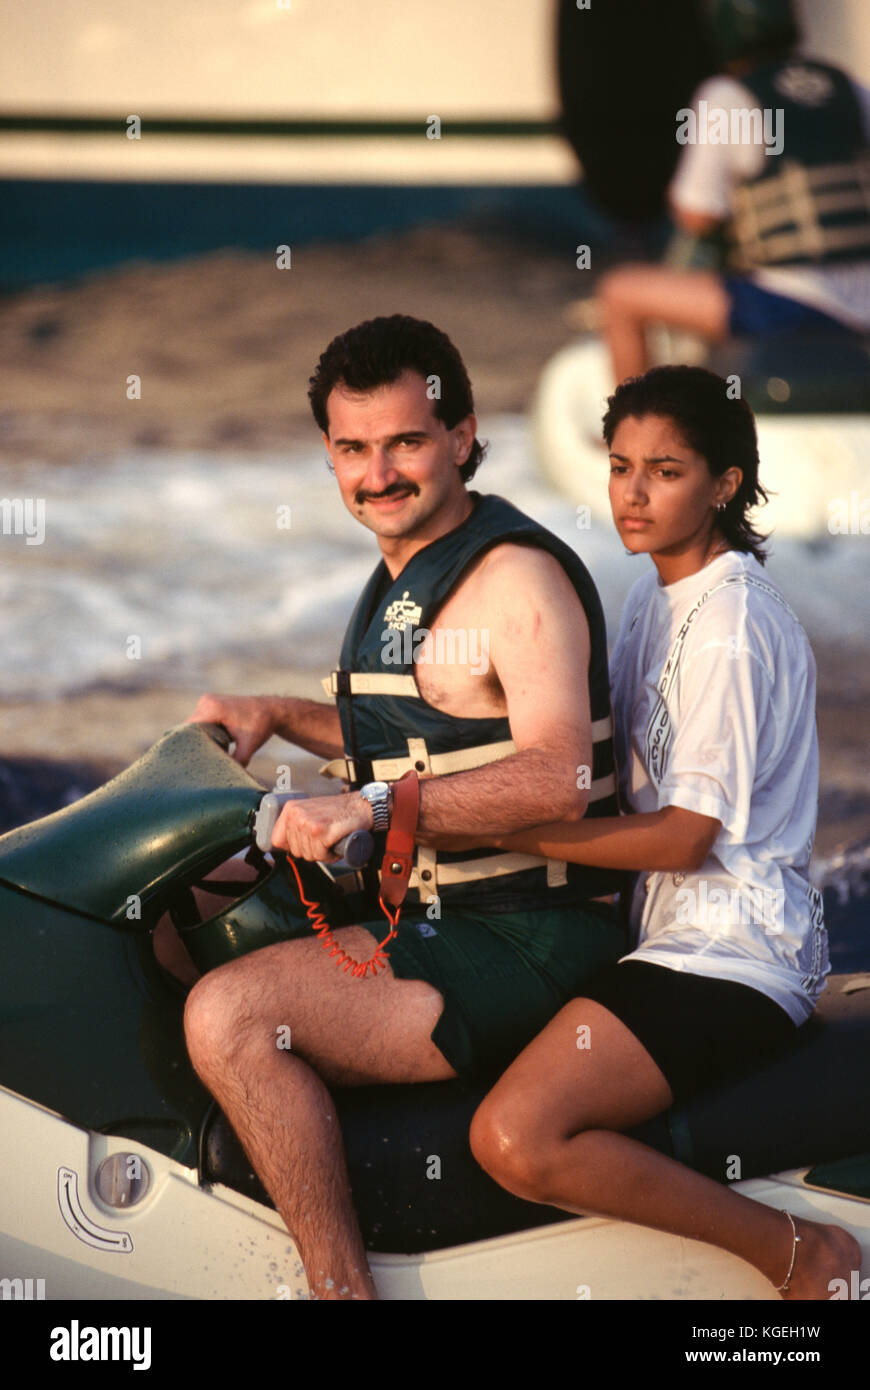 al waleed bin talal It has now been revealed that prince al-waleed bin talal obtained his freedom only after handing over $6 billion worth of his fortune to the saudi government more specifically to his cousin, the.